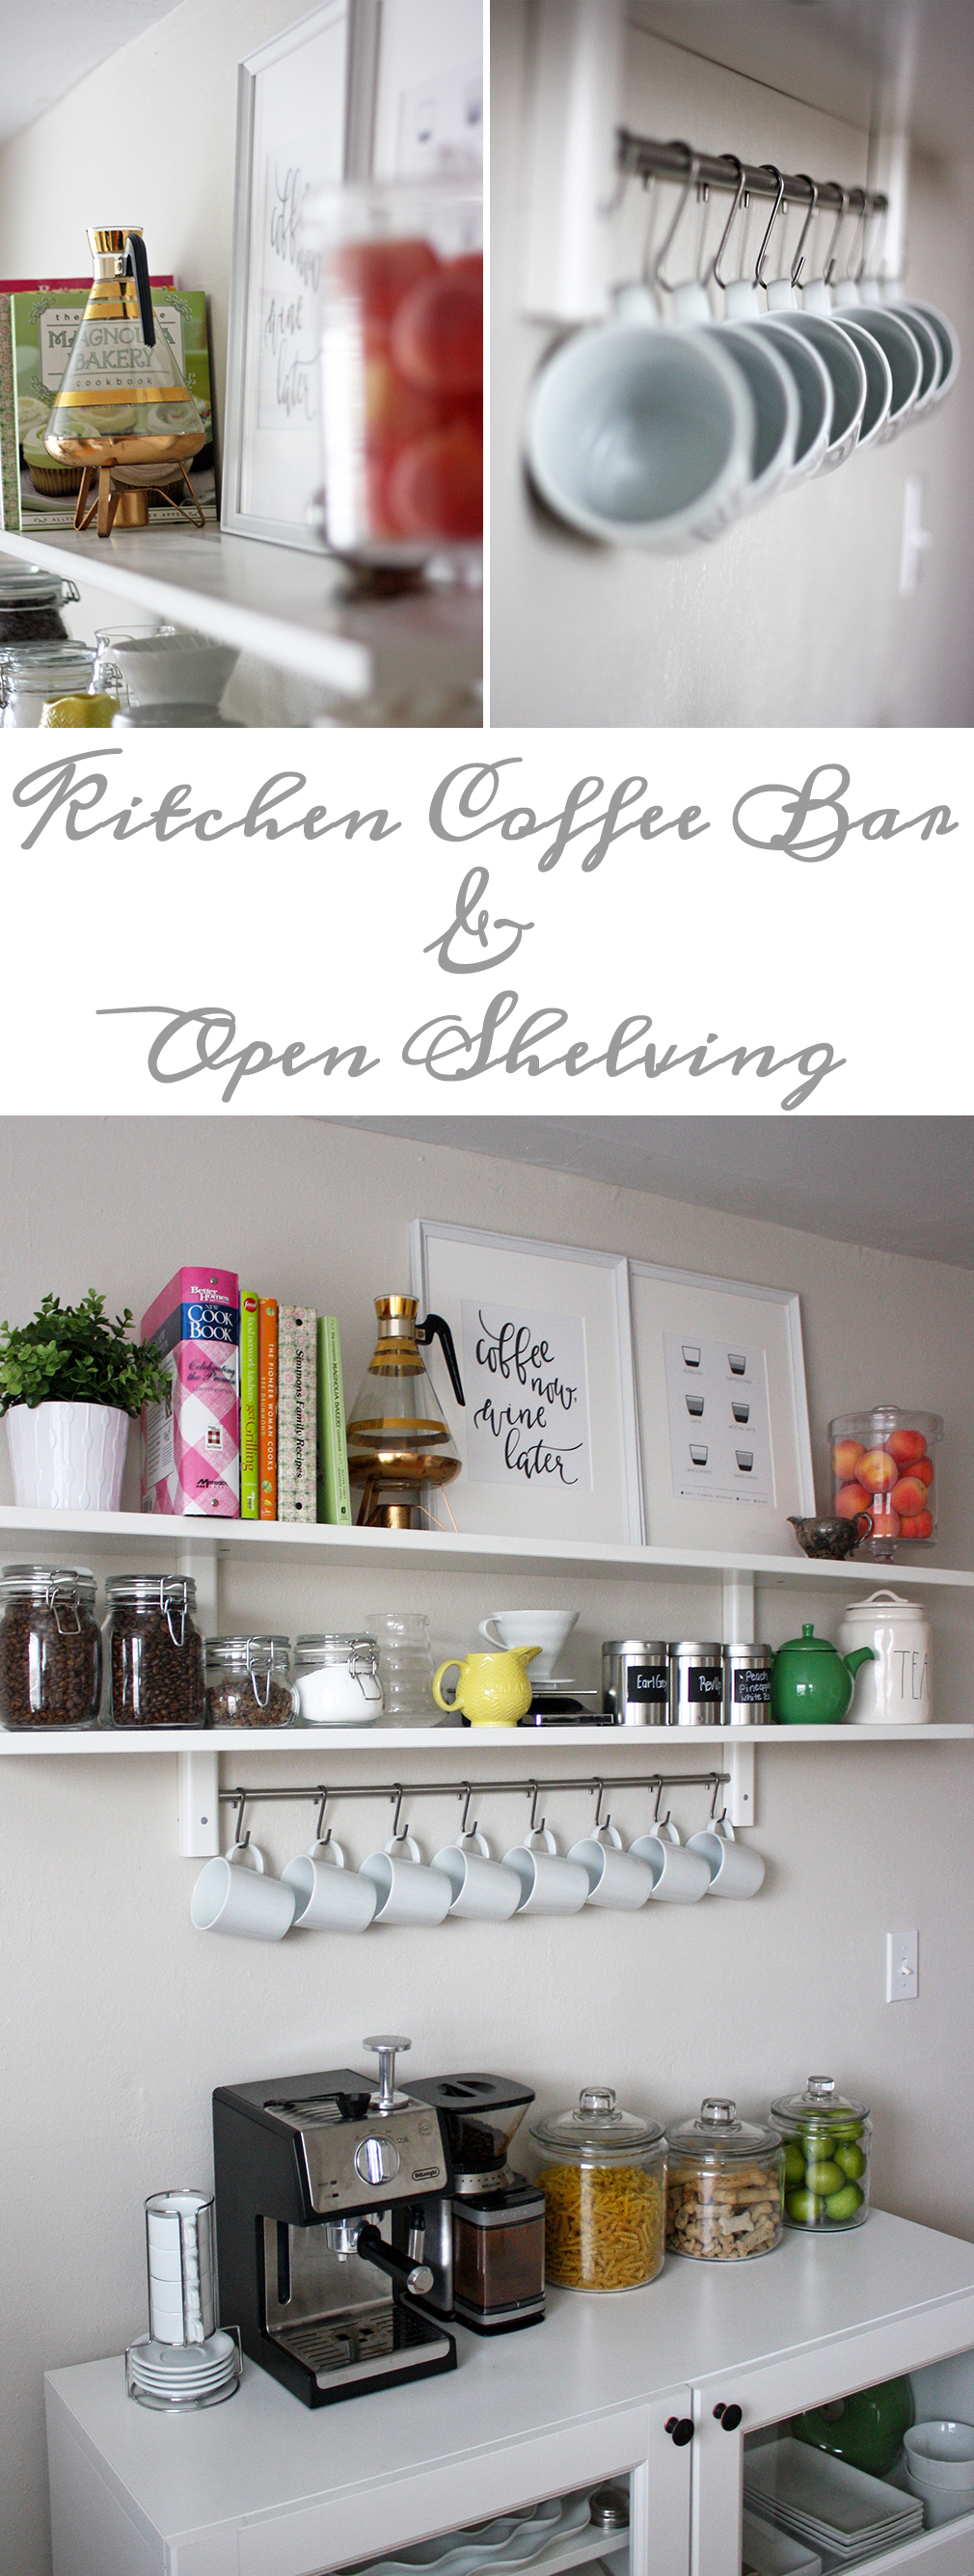 Kitchen Coffee Bar and Open Shelving … – Less Than Average Height